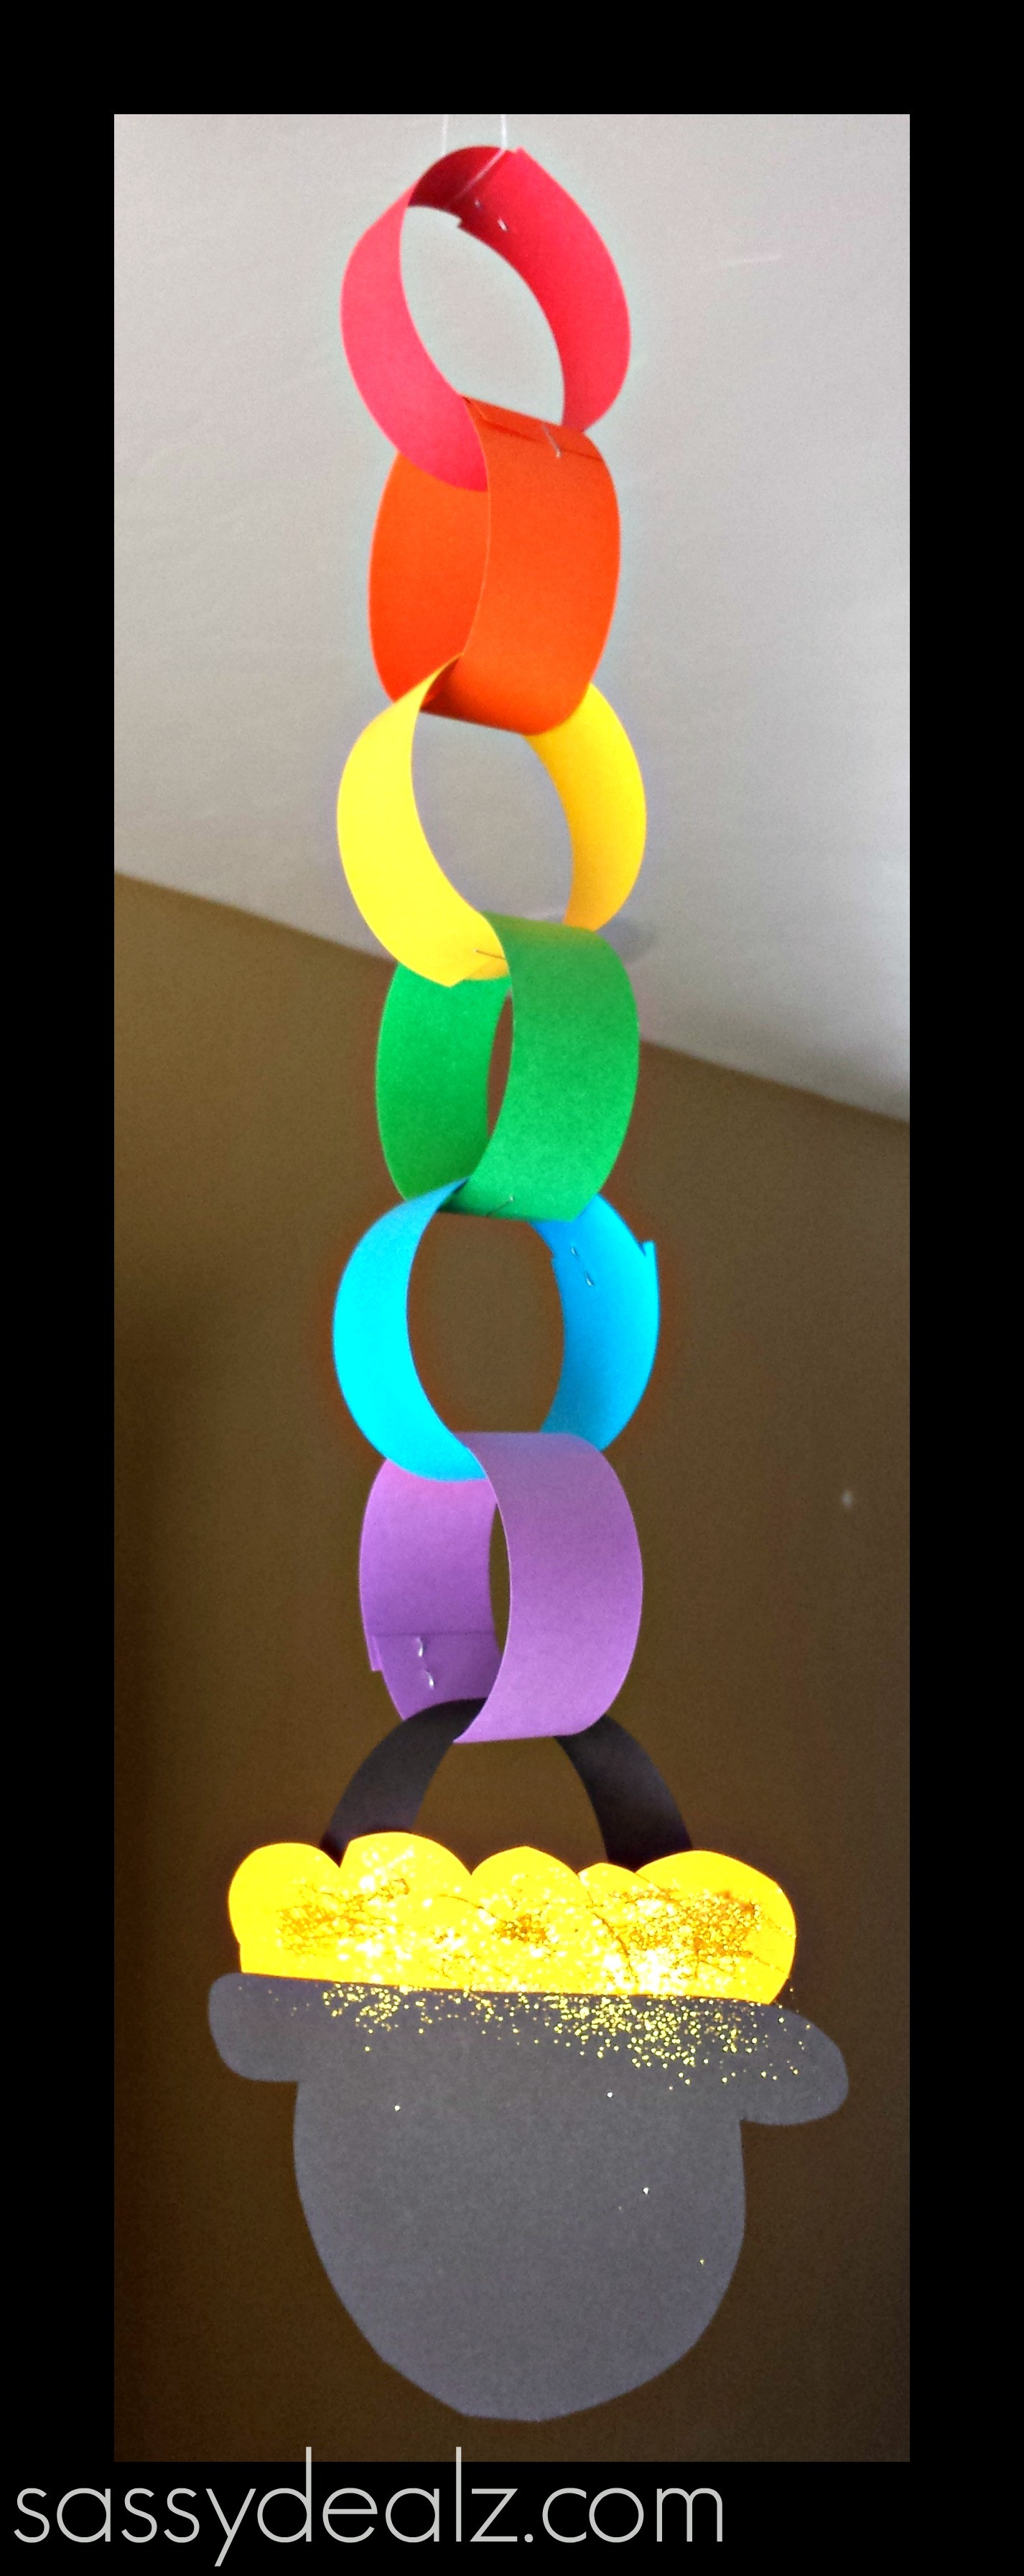 Best ideas about March Crafts For Kids . Save or Pin Rainbow Chain Craft For St Patrick s Day Crafty Morning Now.